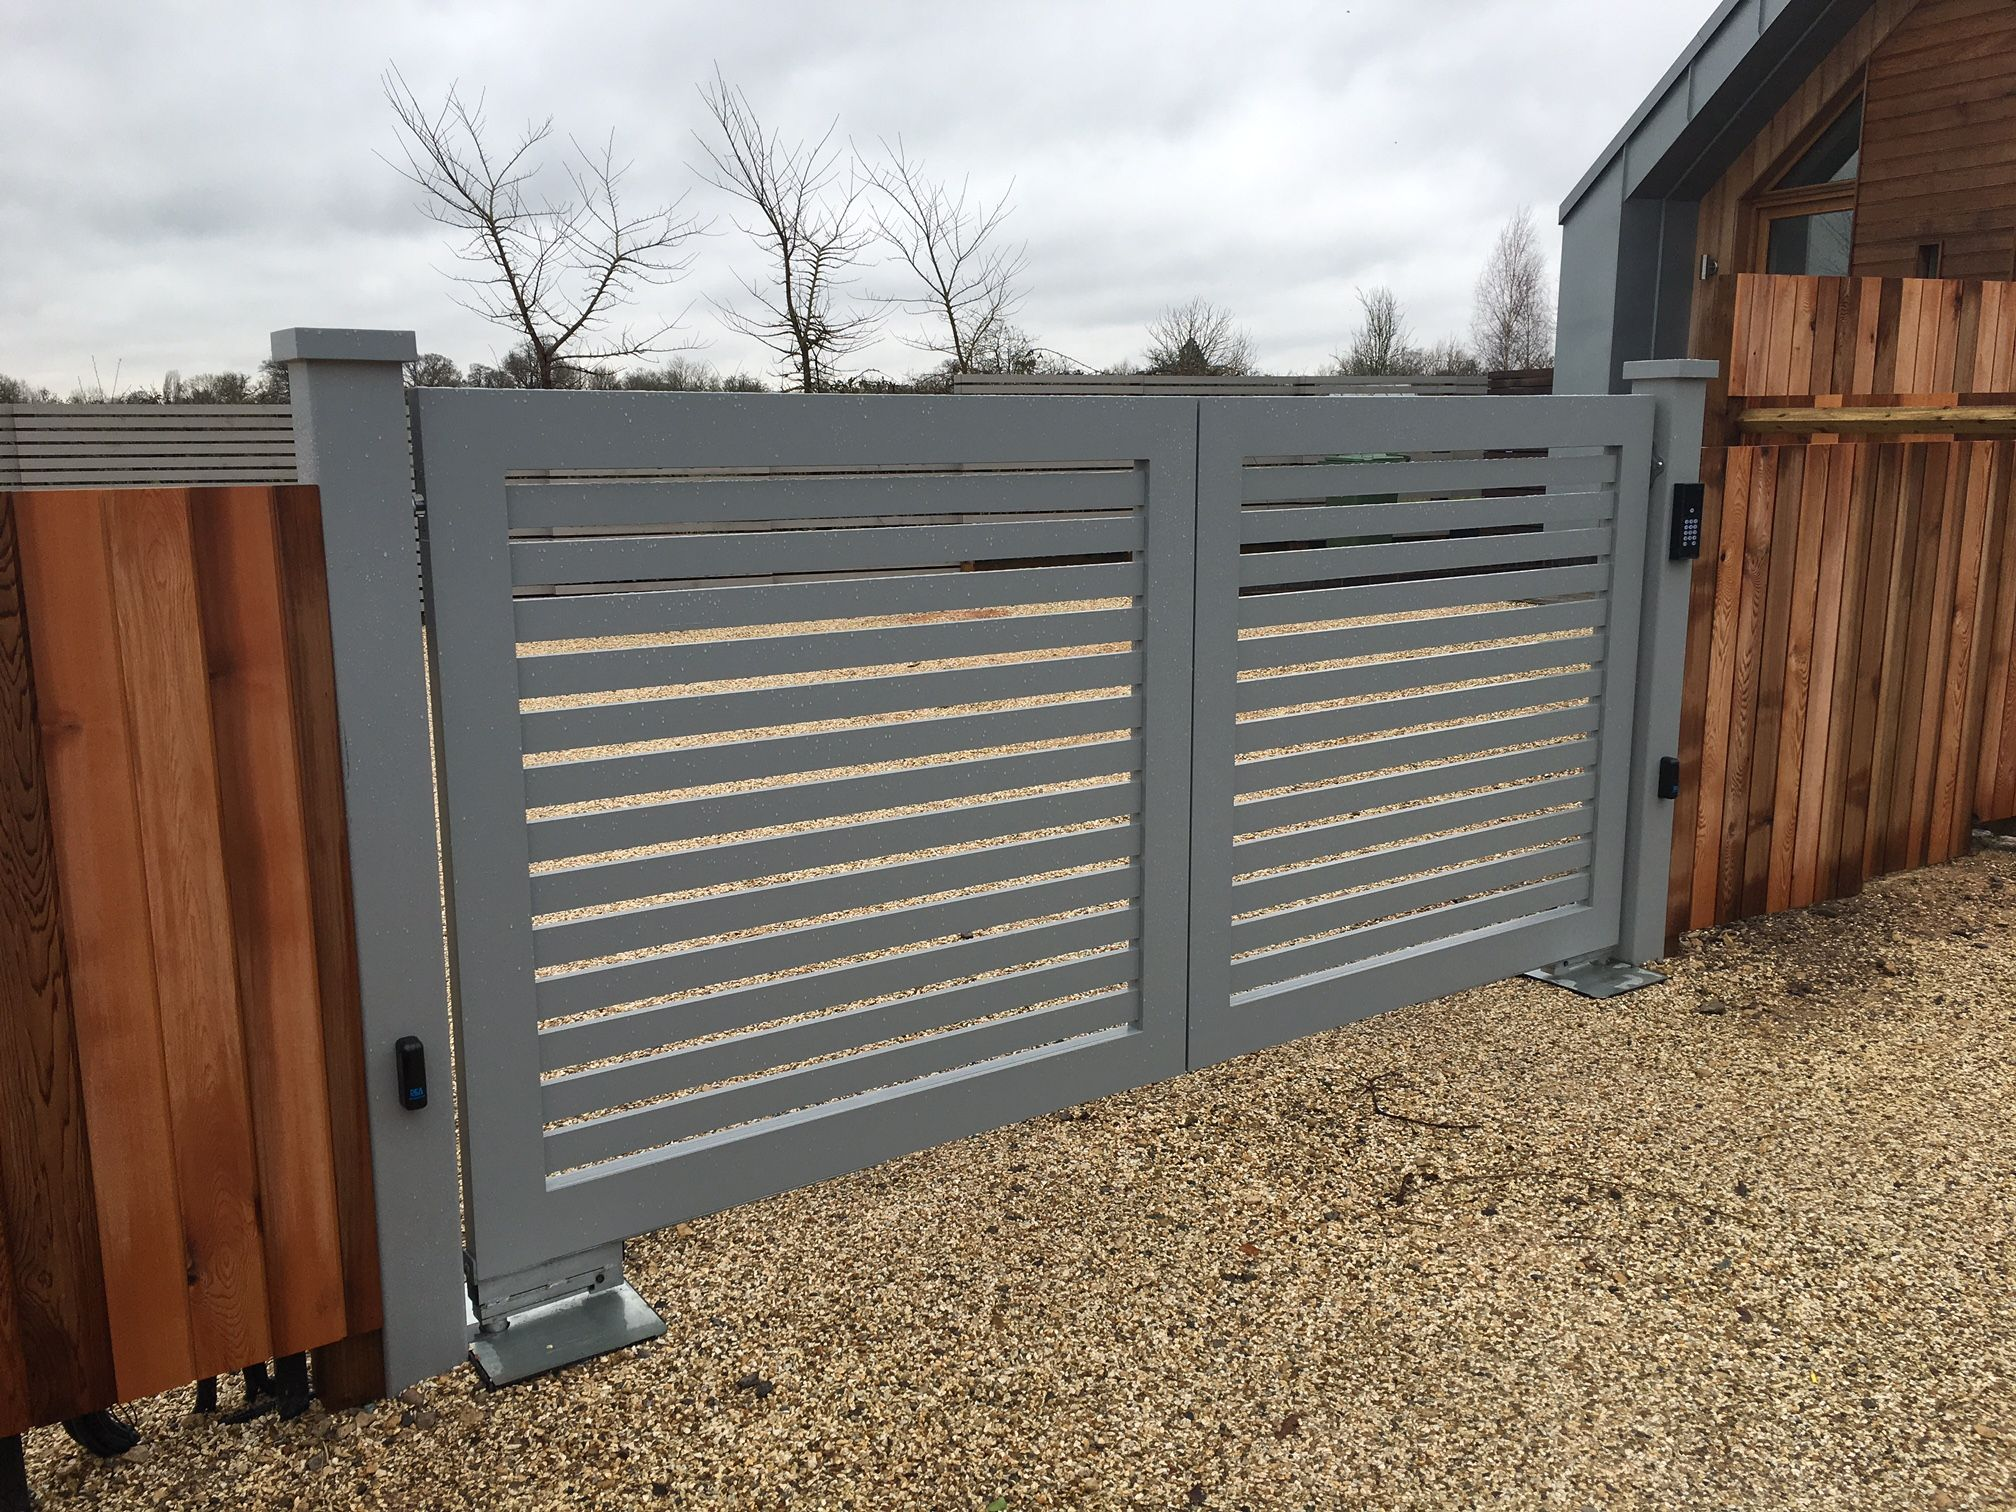 Custom Hand Crafted Aluminium Swing Gates, Underground Automation With A